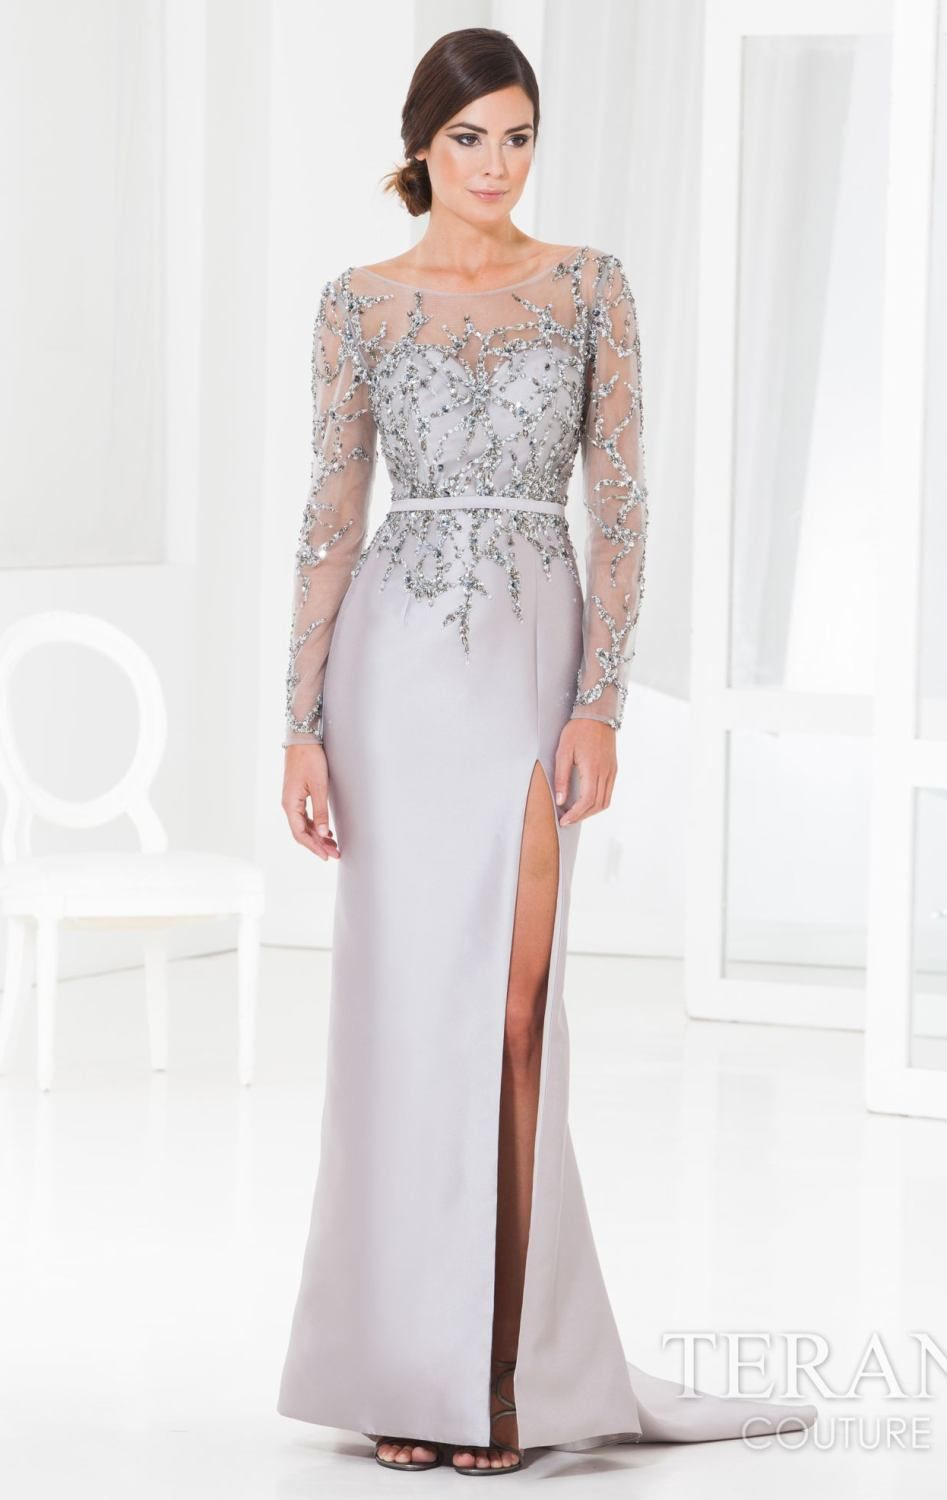 Terani M3846 by Terani Couture Evening   My style   Pinterest ...